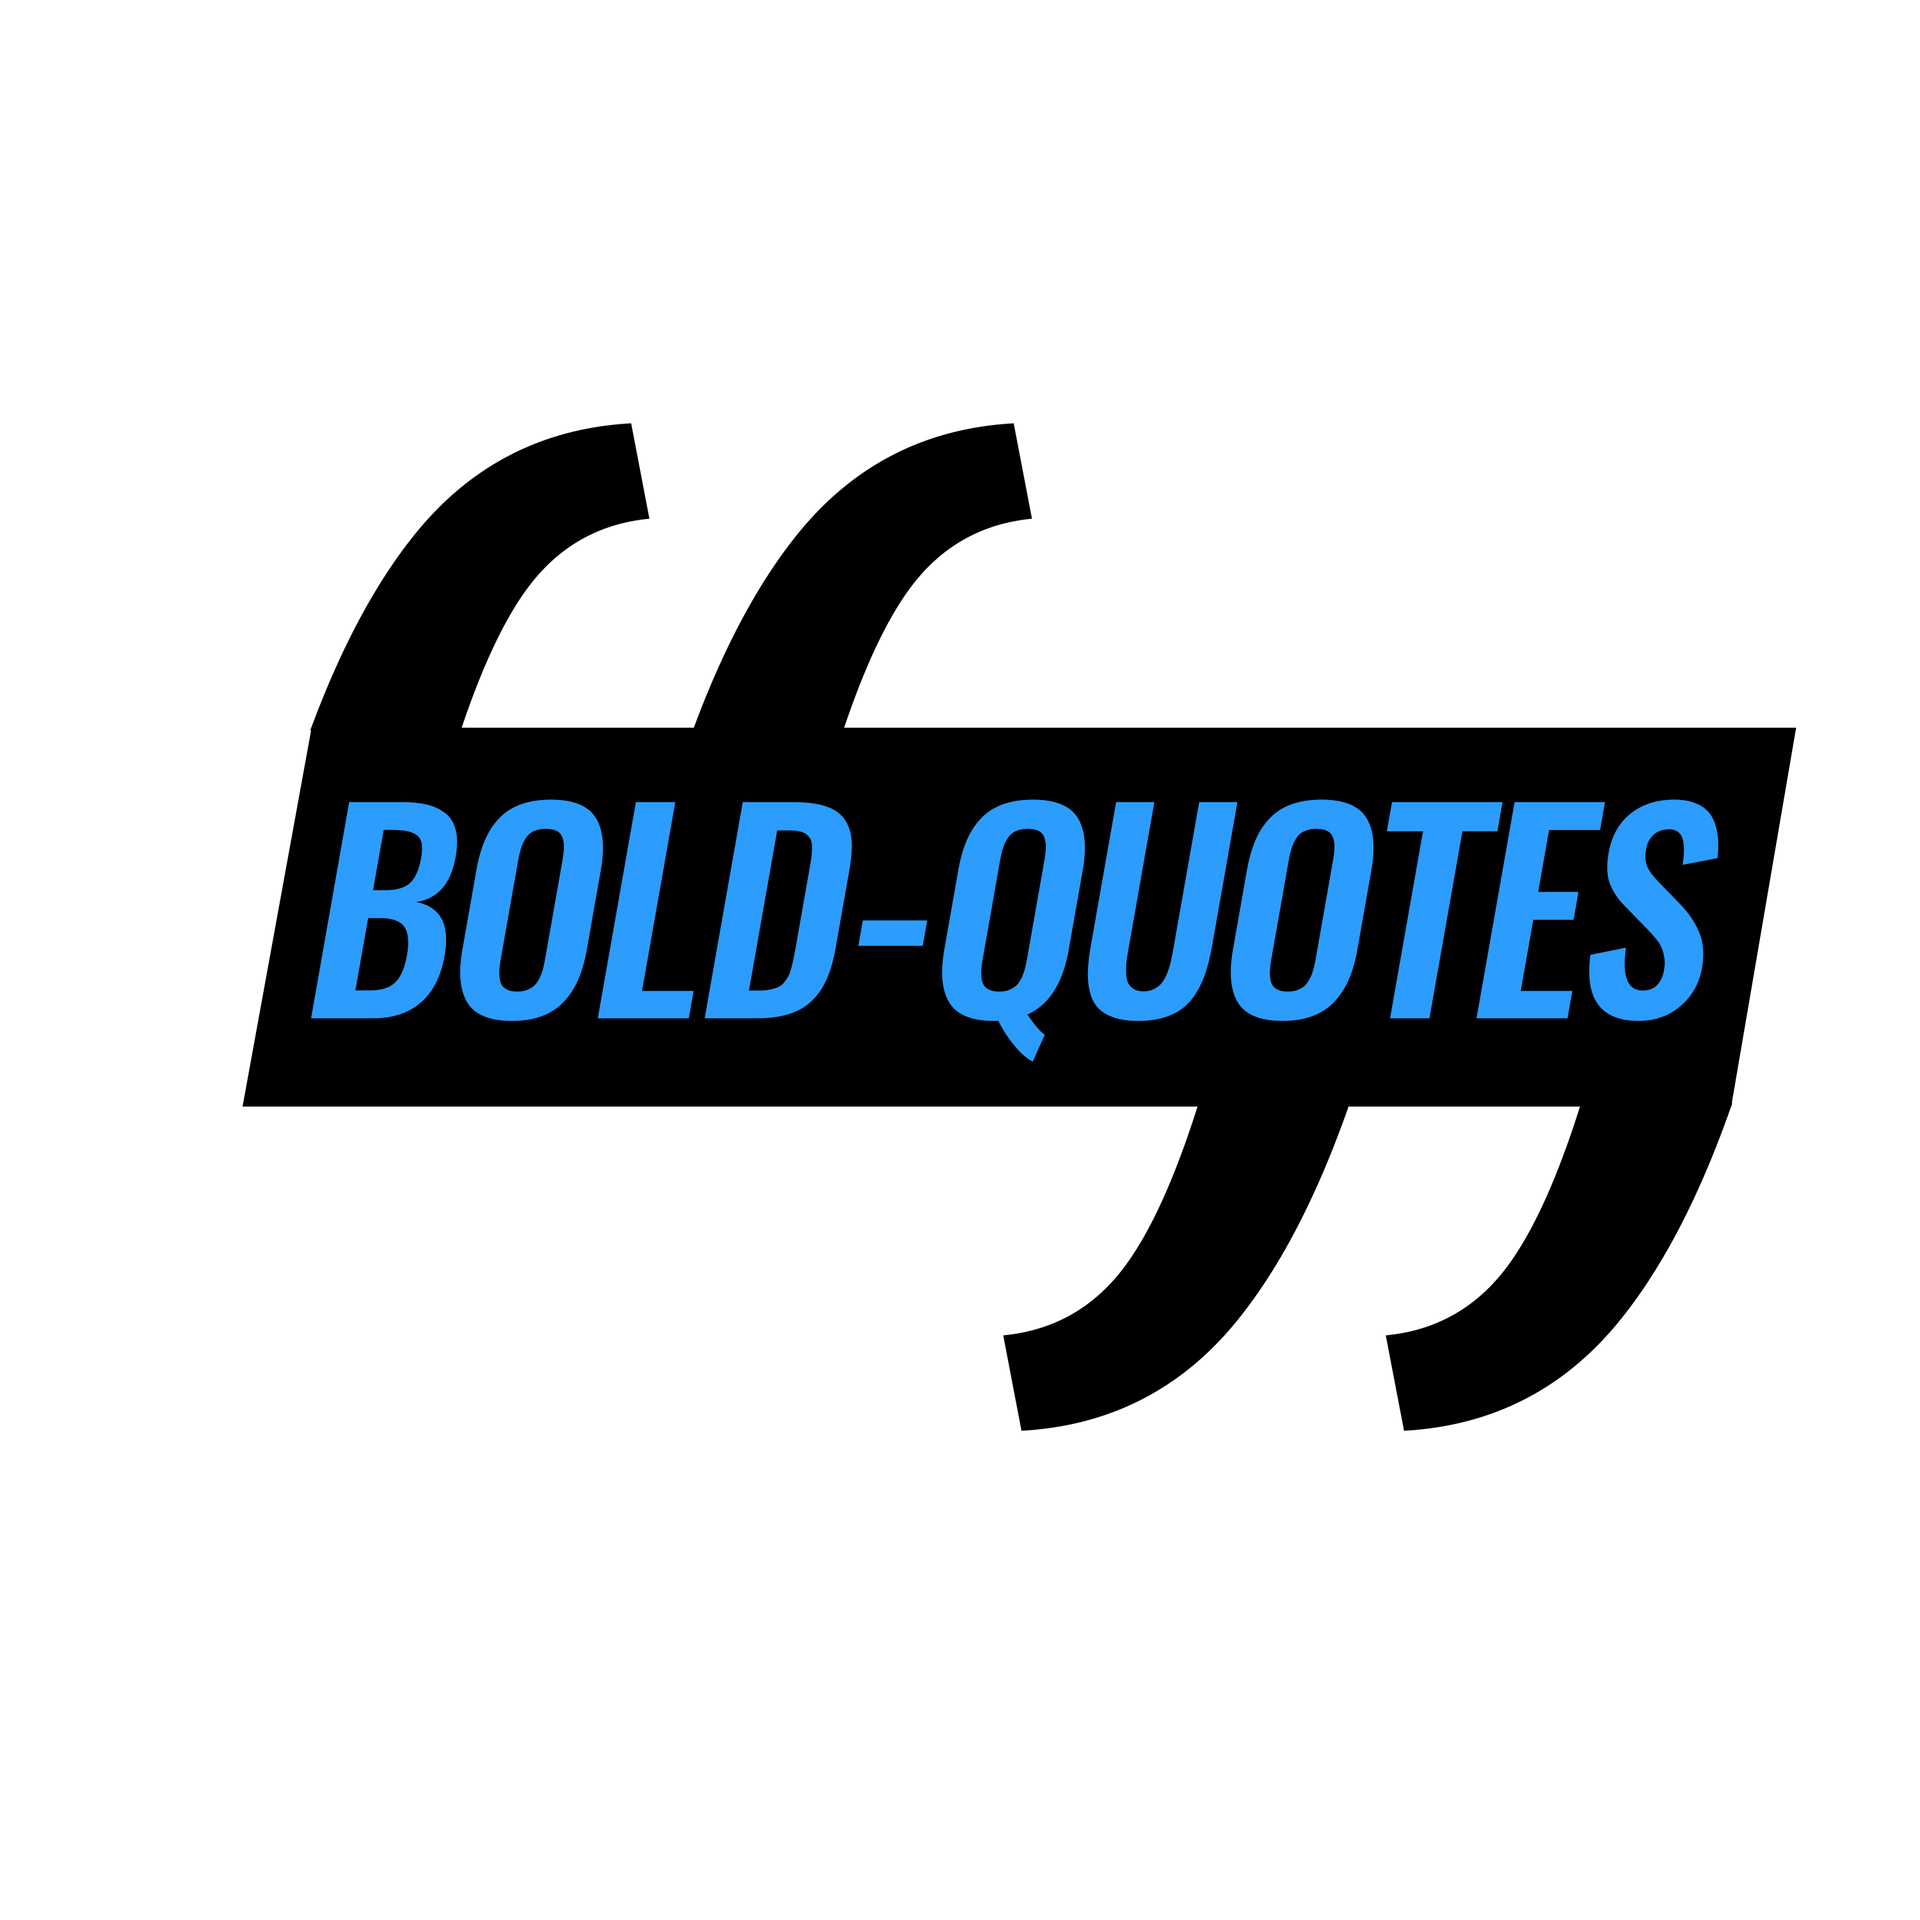 Bold Quotes Logo 4 - Black and Blue.png